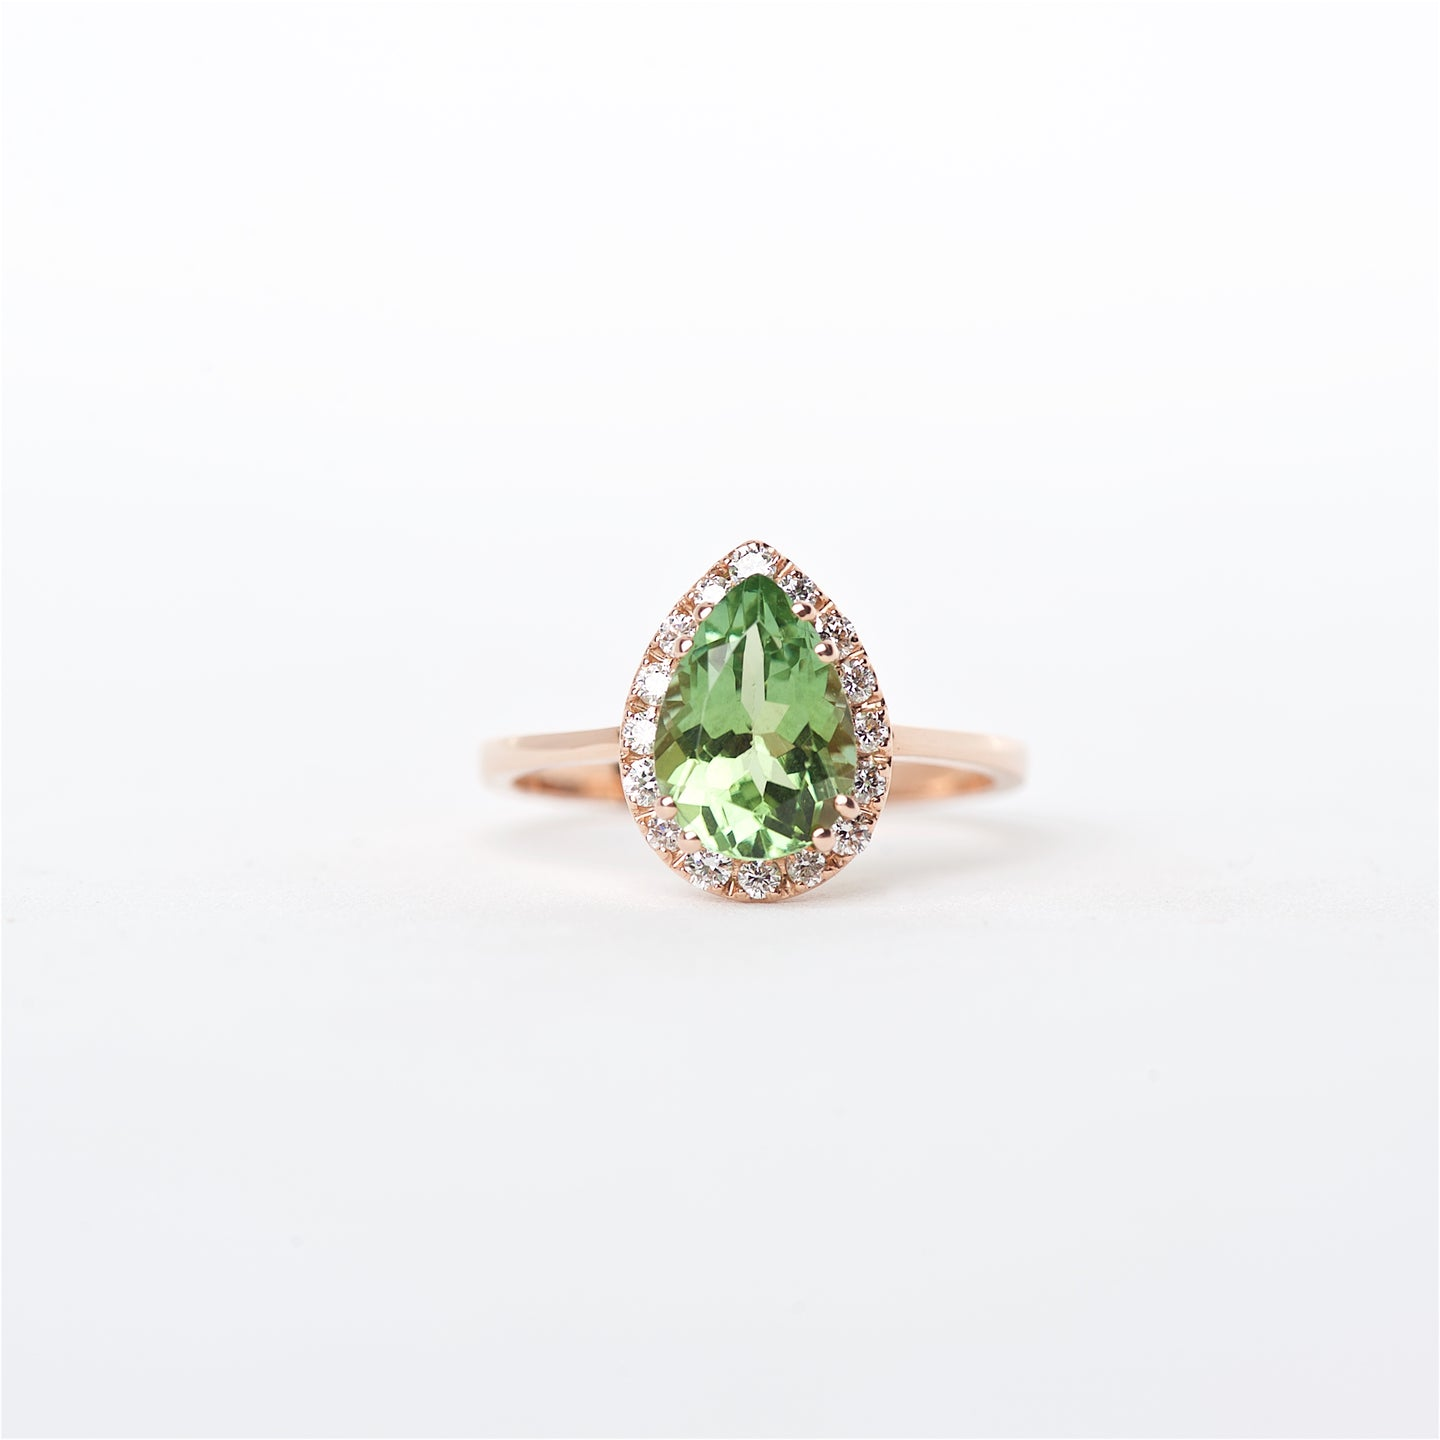 The Addison - 14K Rose Gold Green Tourmaline and Diamond Ring